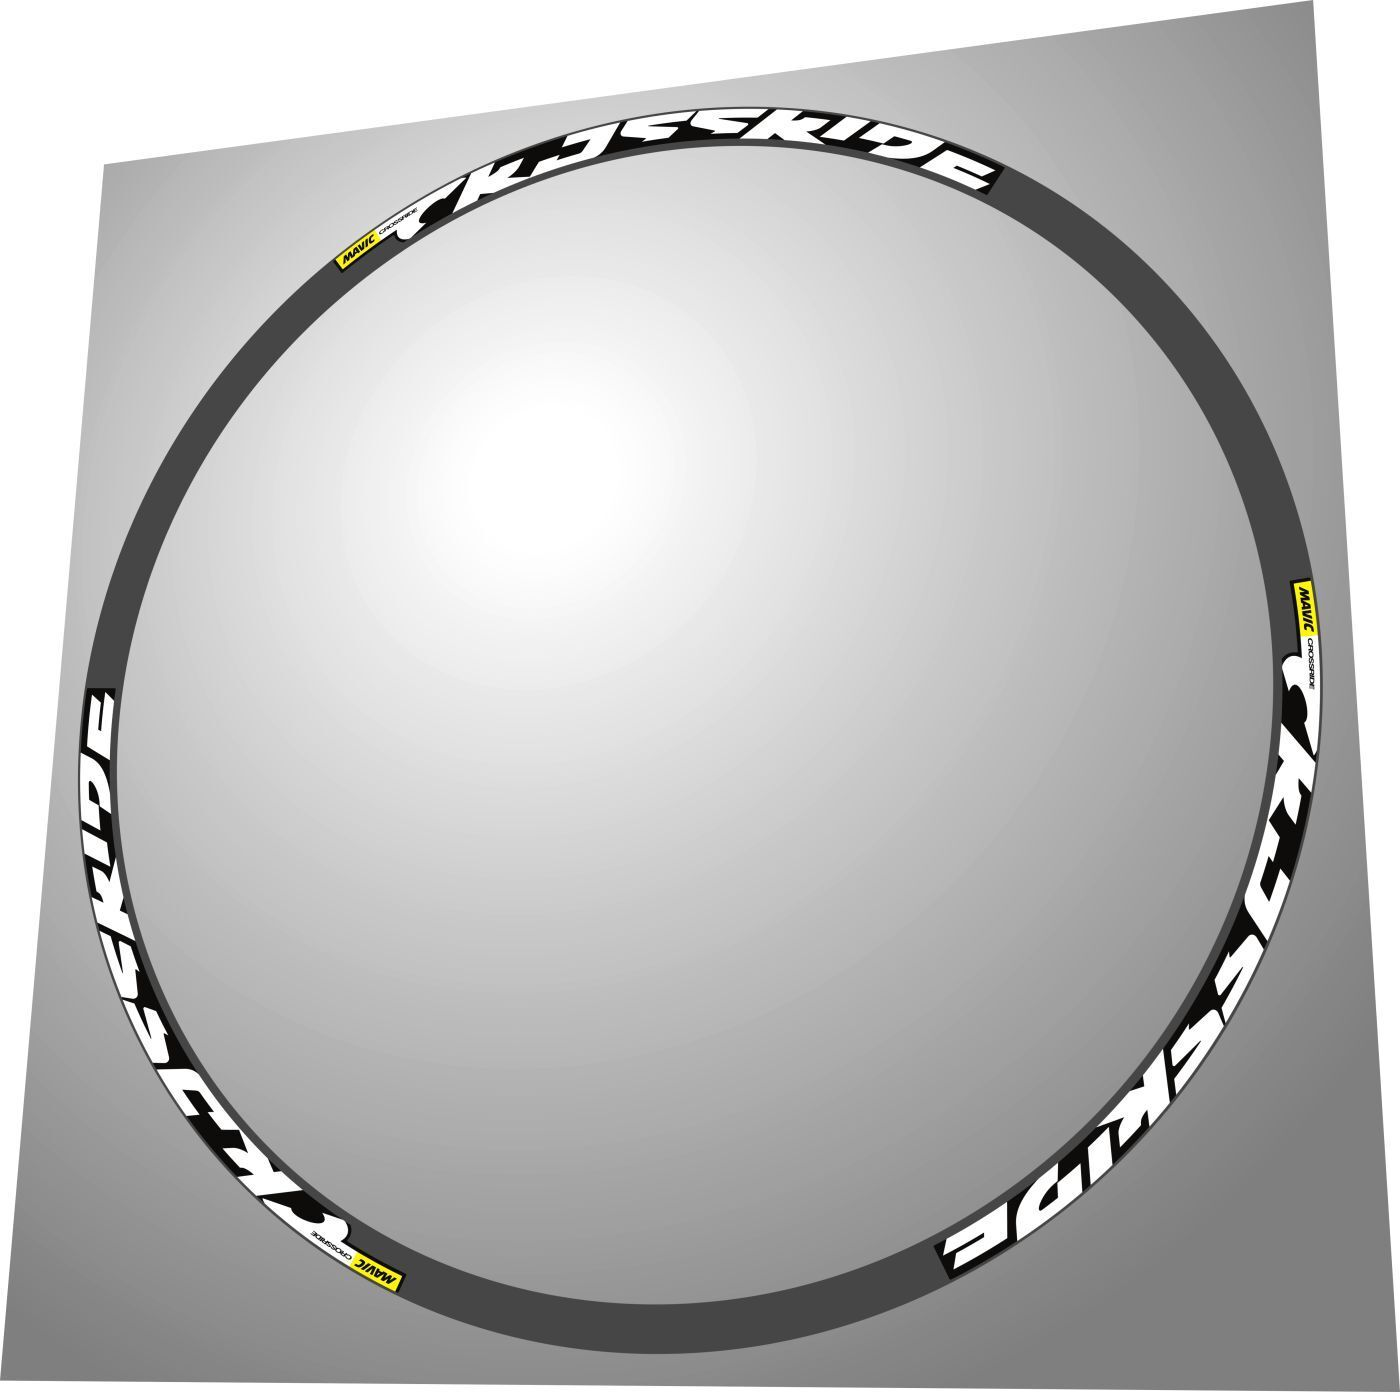 MAVIC CROSSRIDE 2015 650B - 27,5 inch  MTB WHITE REPLACEMENT DECAL SET FOR 2 RIMS  the best selection of